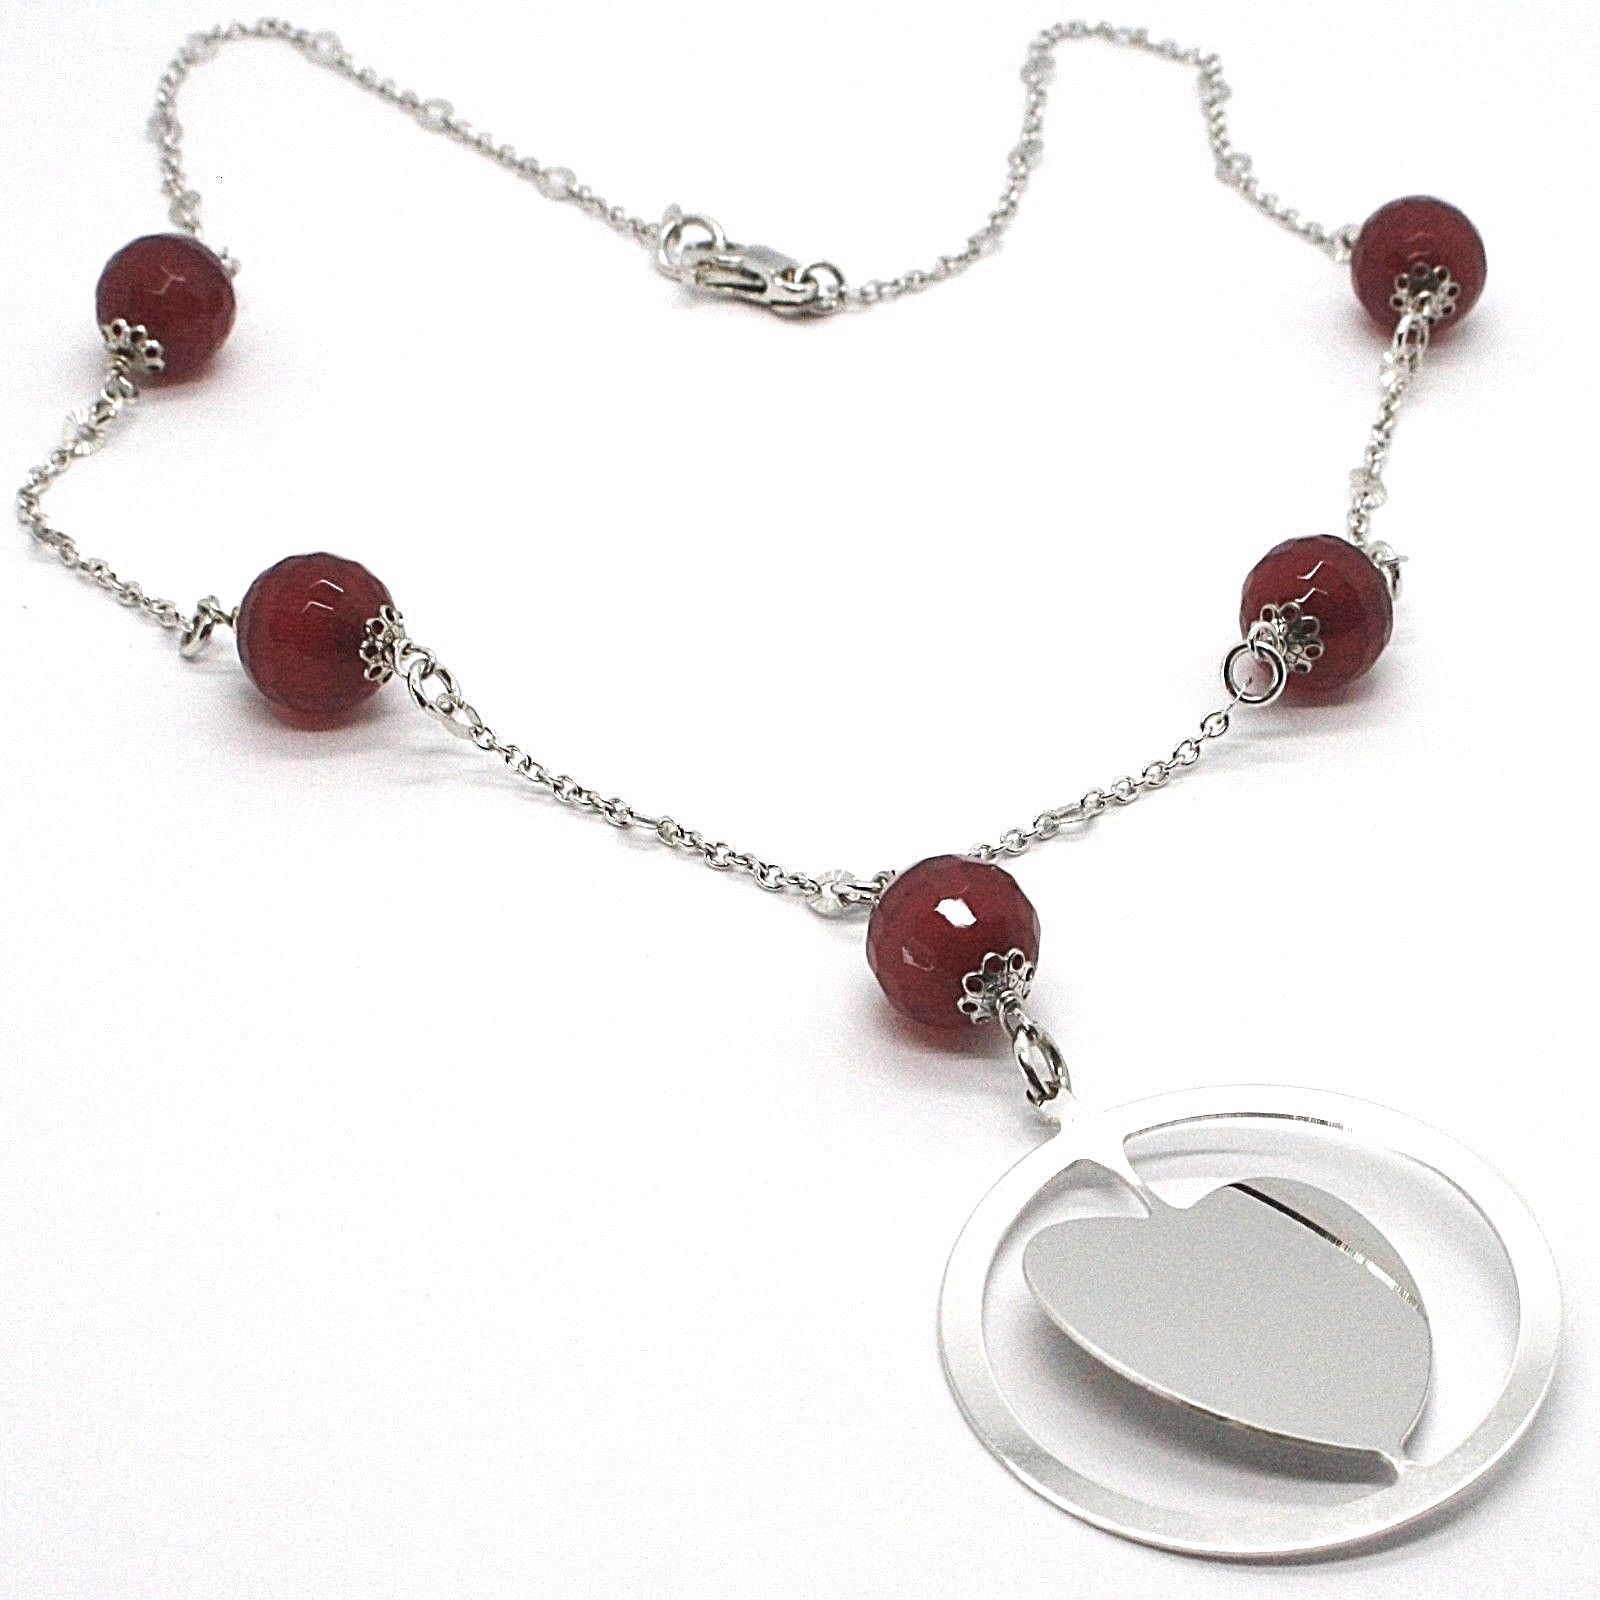 Necklace Silver 925, Carnelian Faceted, Heart Sloped Pendant